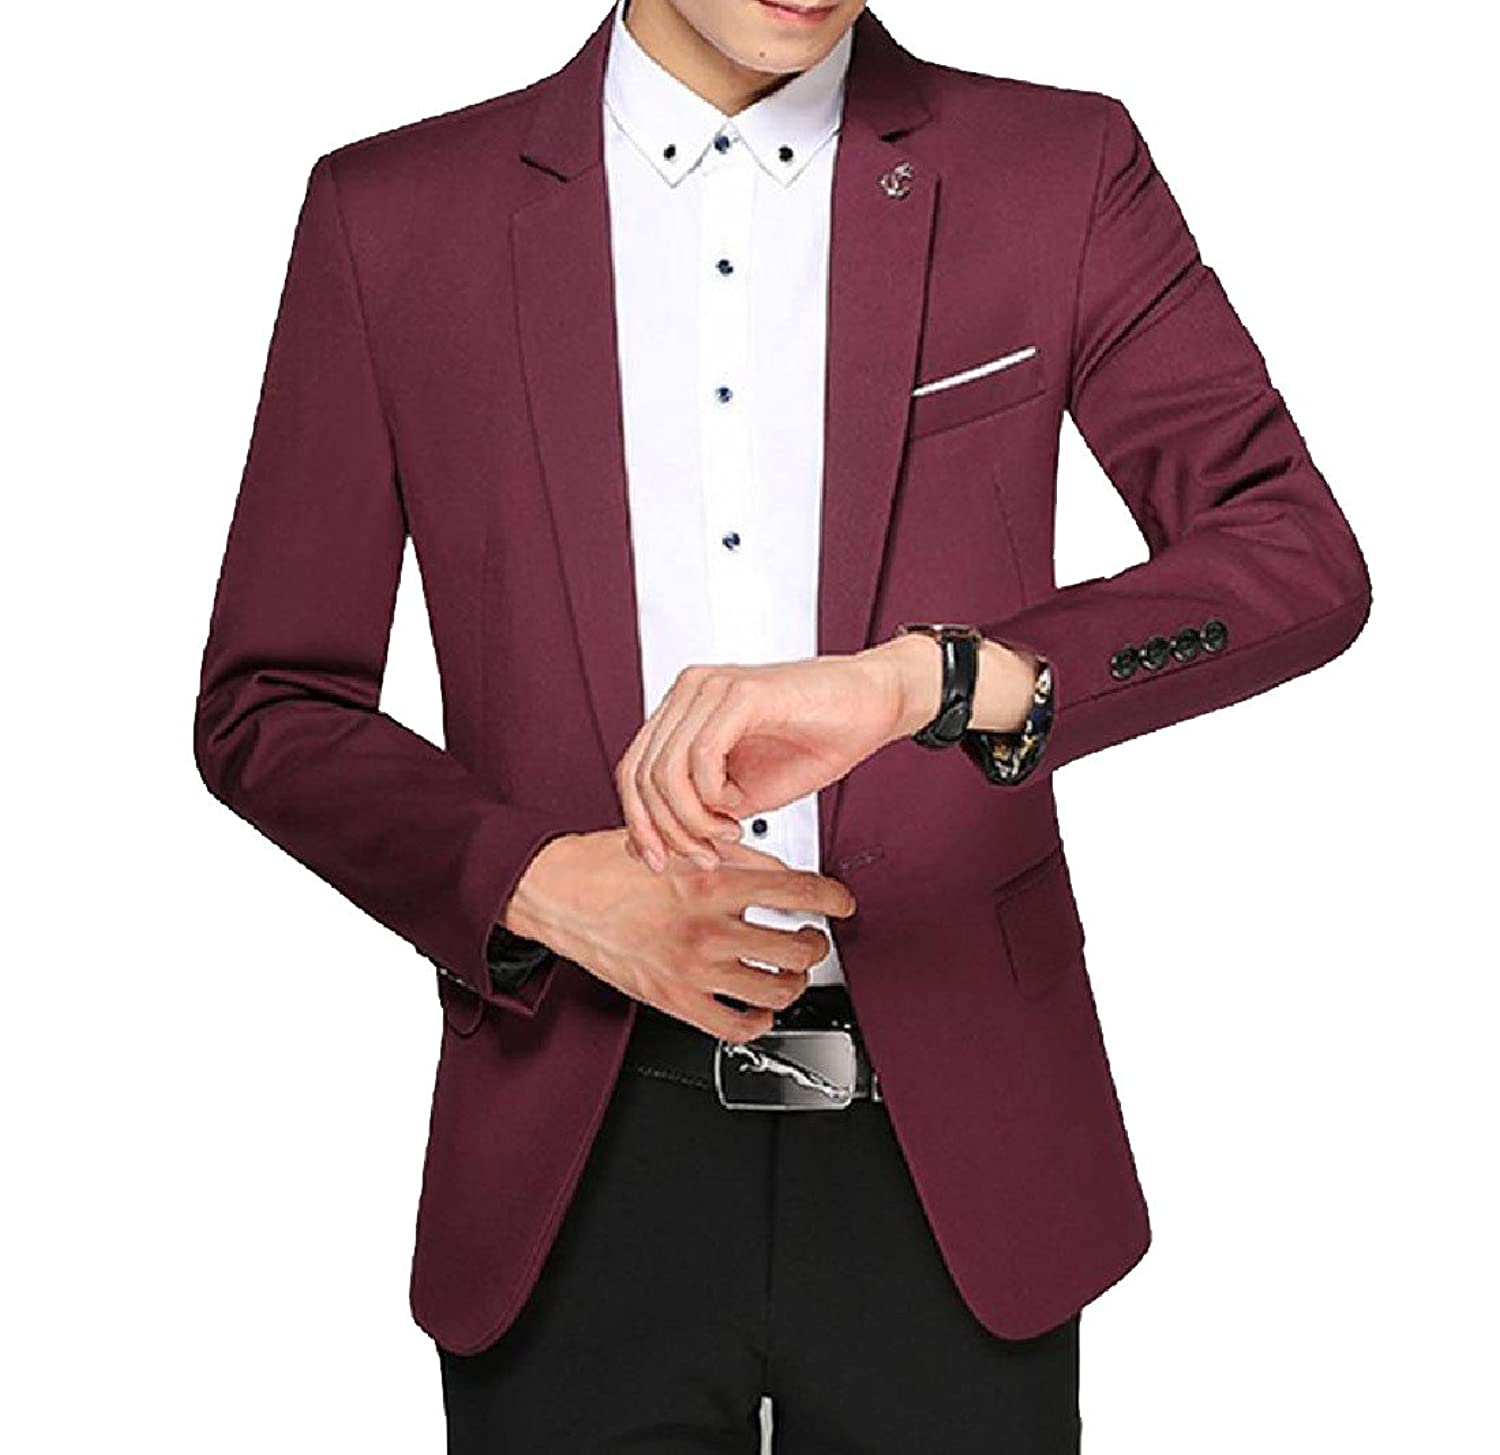 Cheap Coolred Men's Long Sleeve Stitching Solid Slim Fit Jackets Dress Suit Overcoat supplier